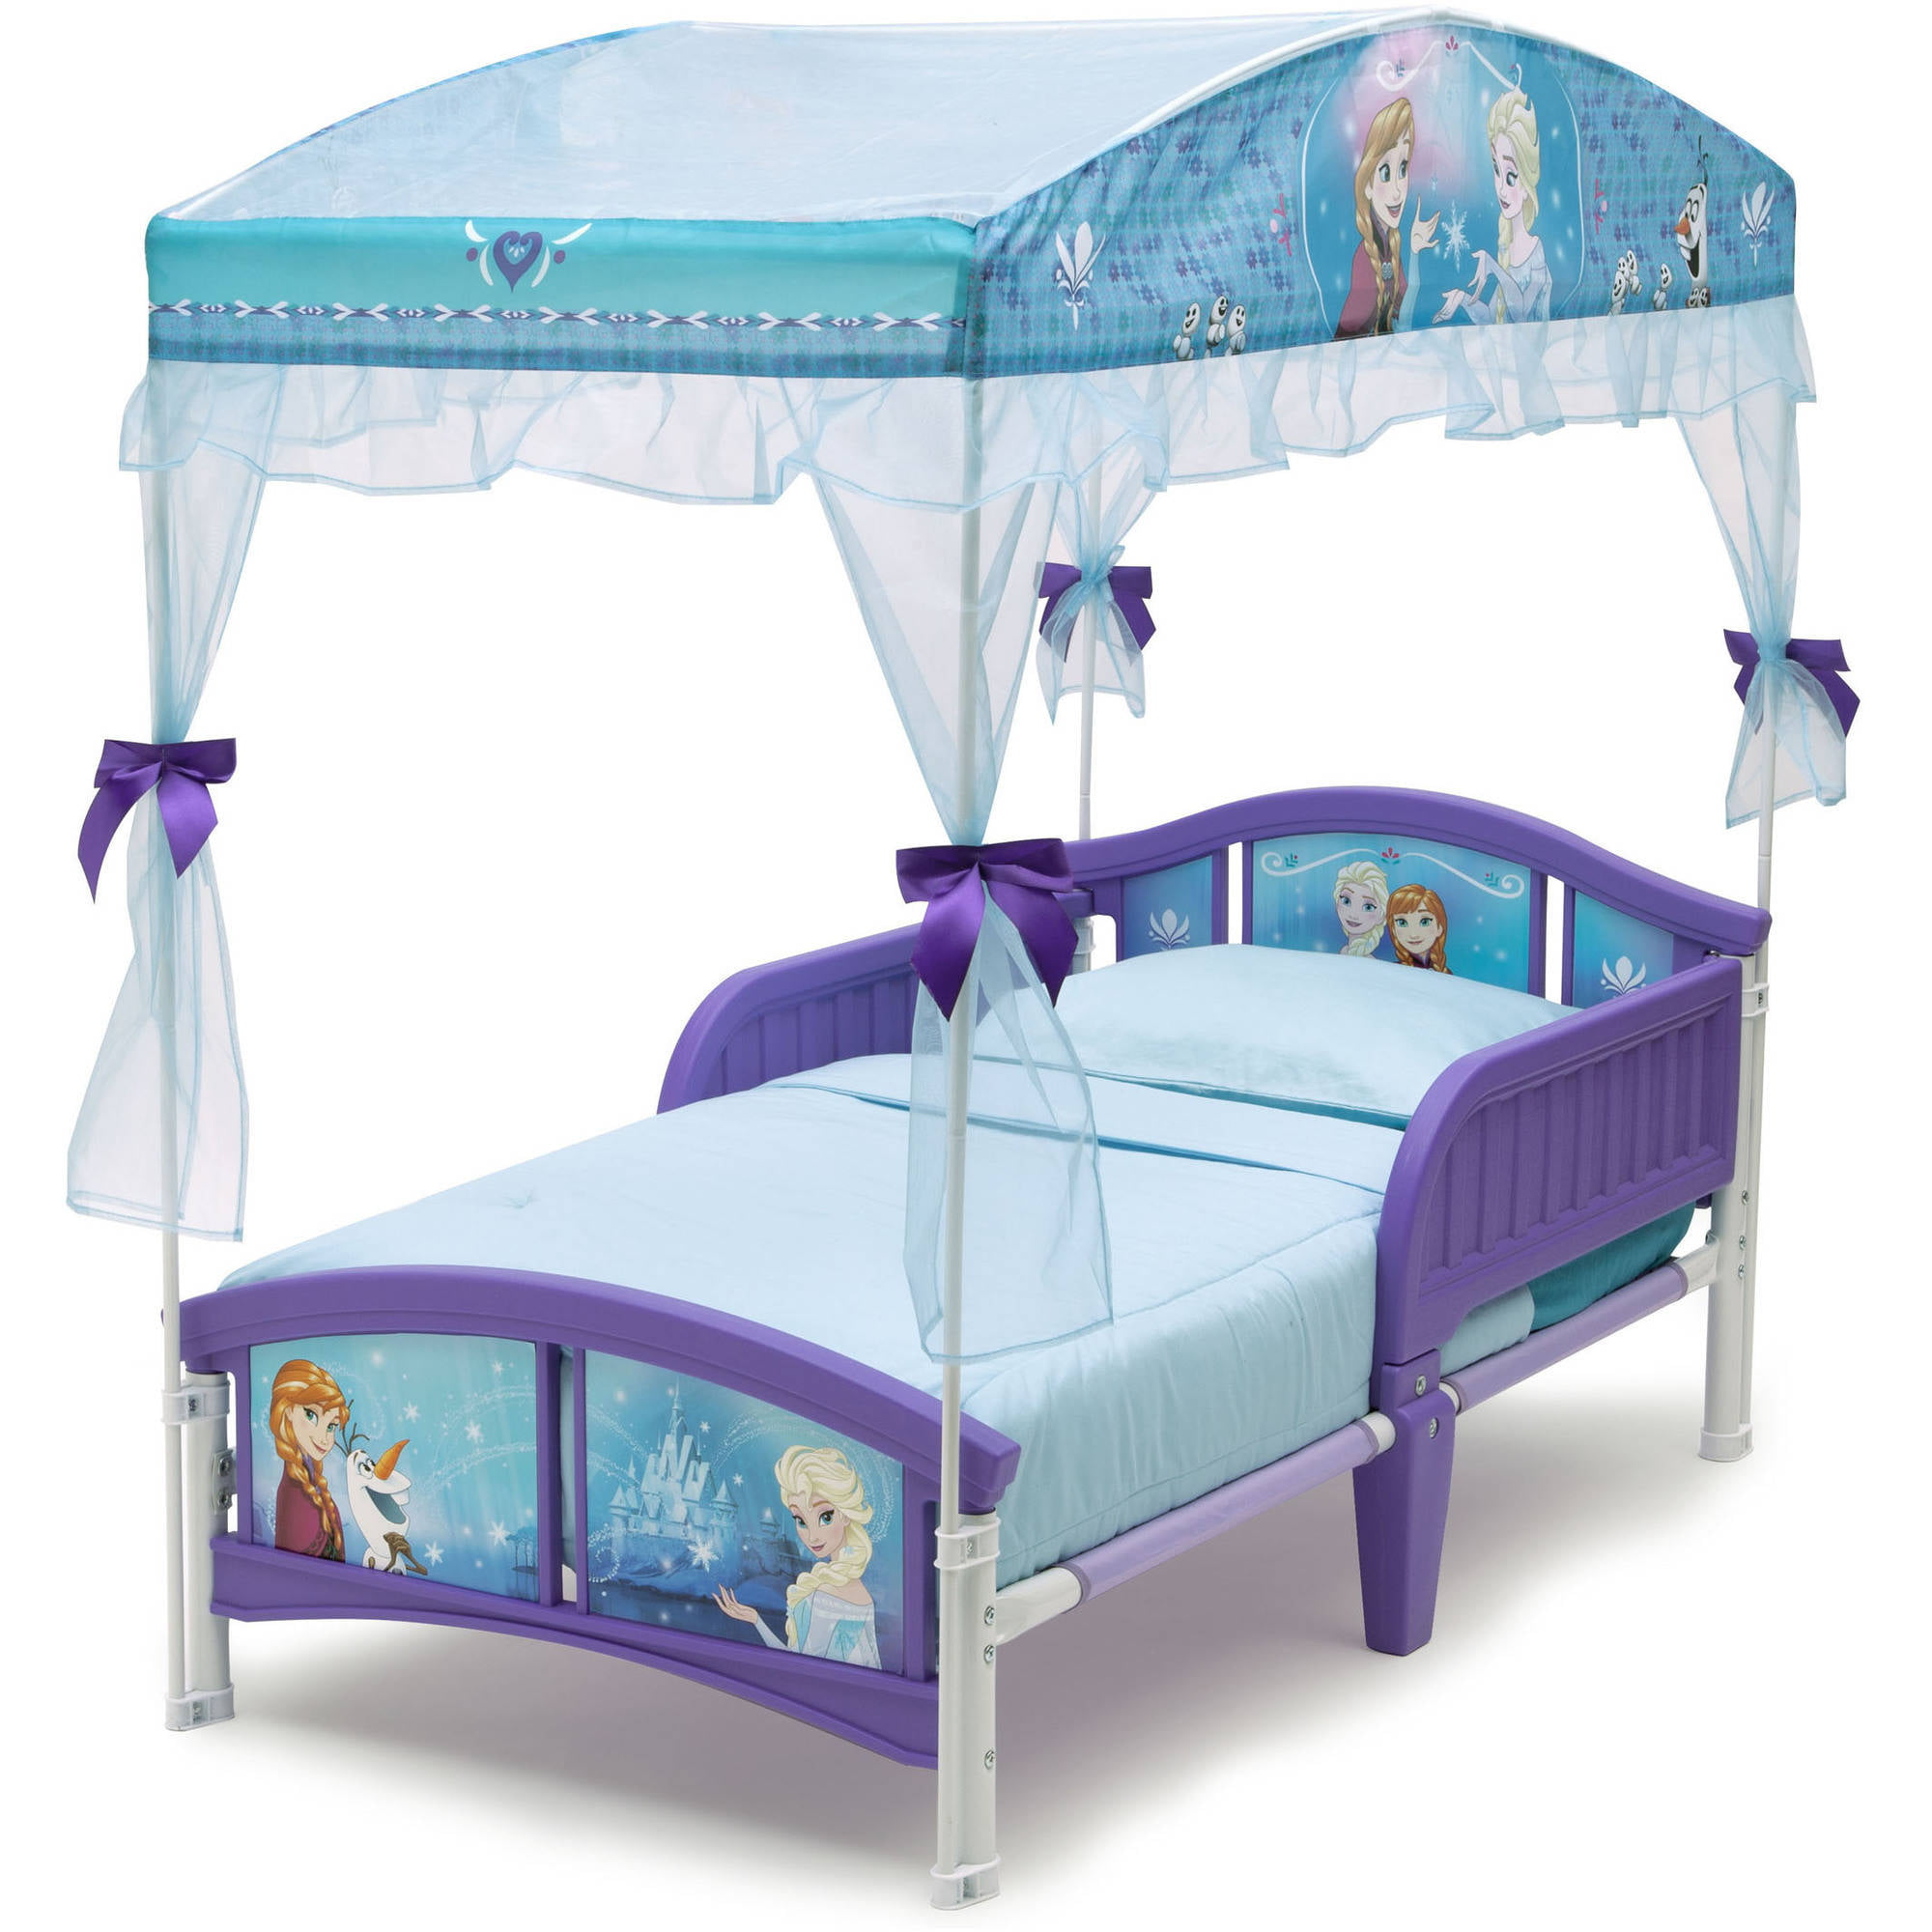 princess dream r babies frozen kids furniture chairs walmart toddler your exclusive youth set spiderman for beds accessories us bed toys bedroom